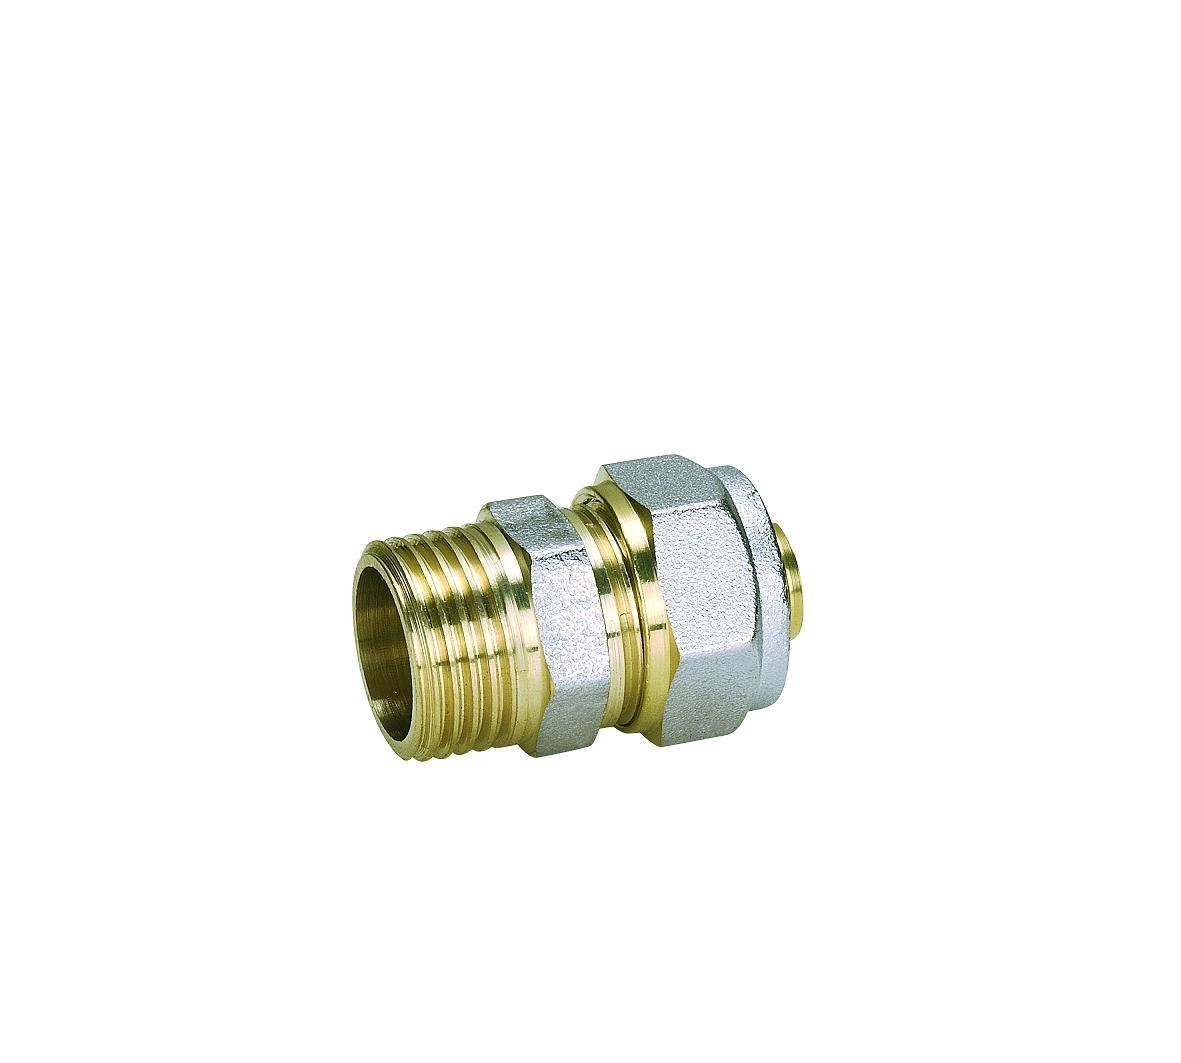 Brass Fittings for Pex-Al-Pex Pipe with Straight Male Connector